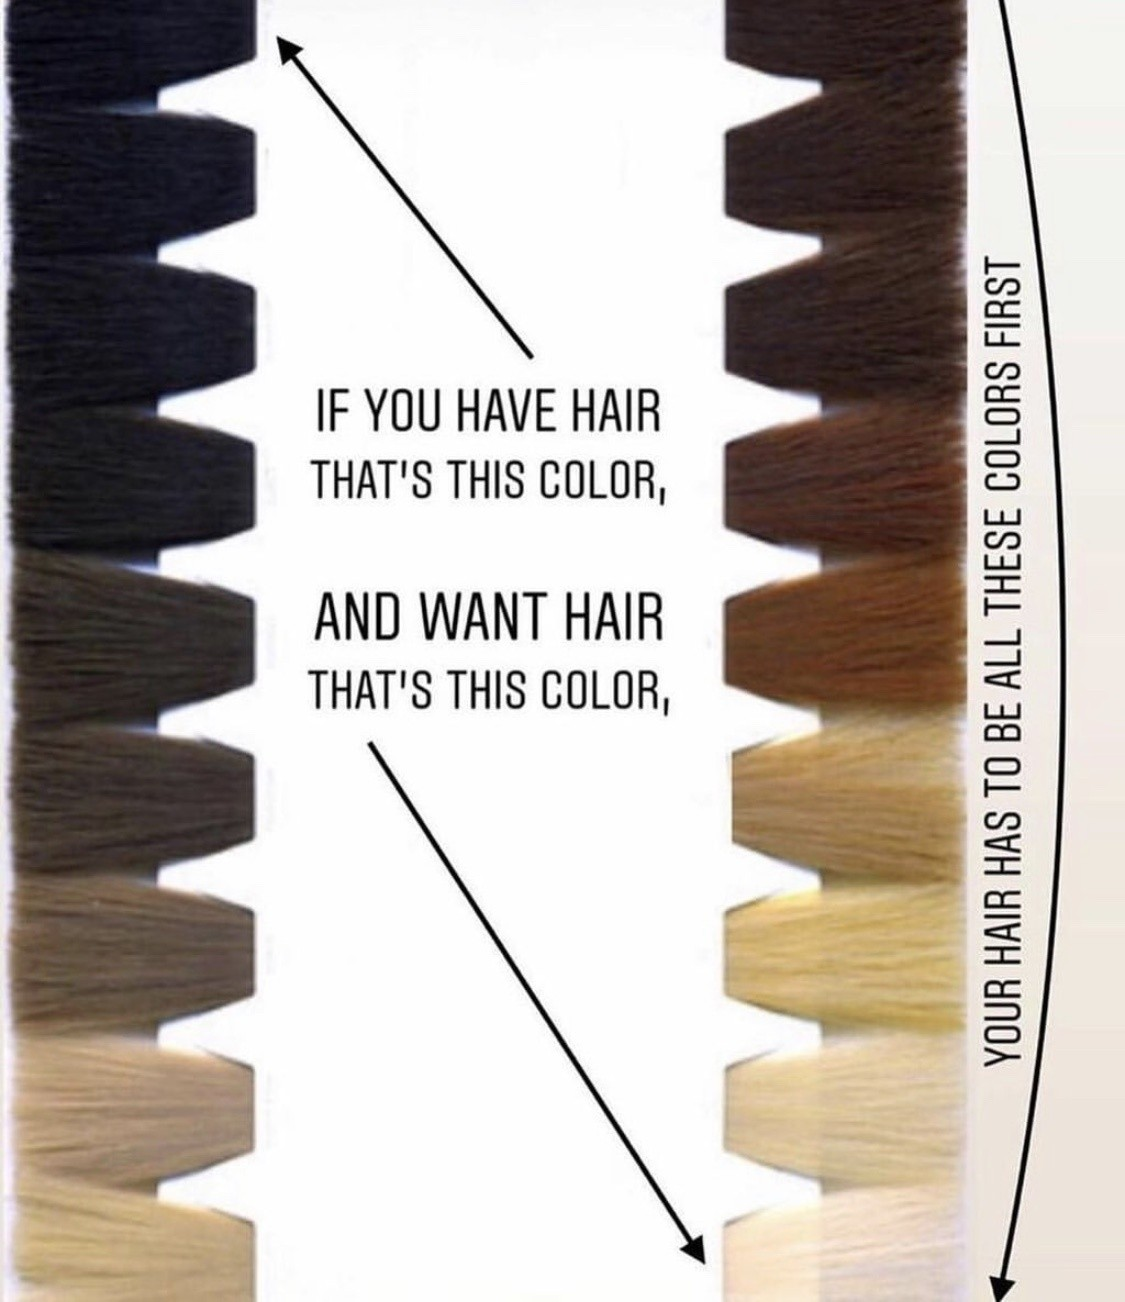 I don't understand hair colour! What do I choose?